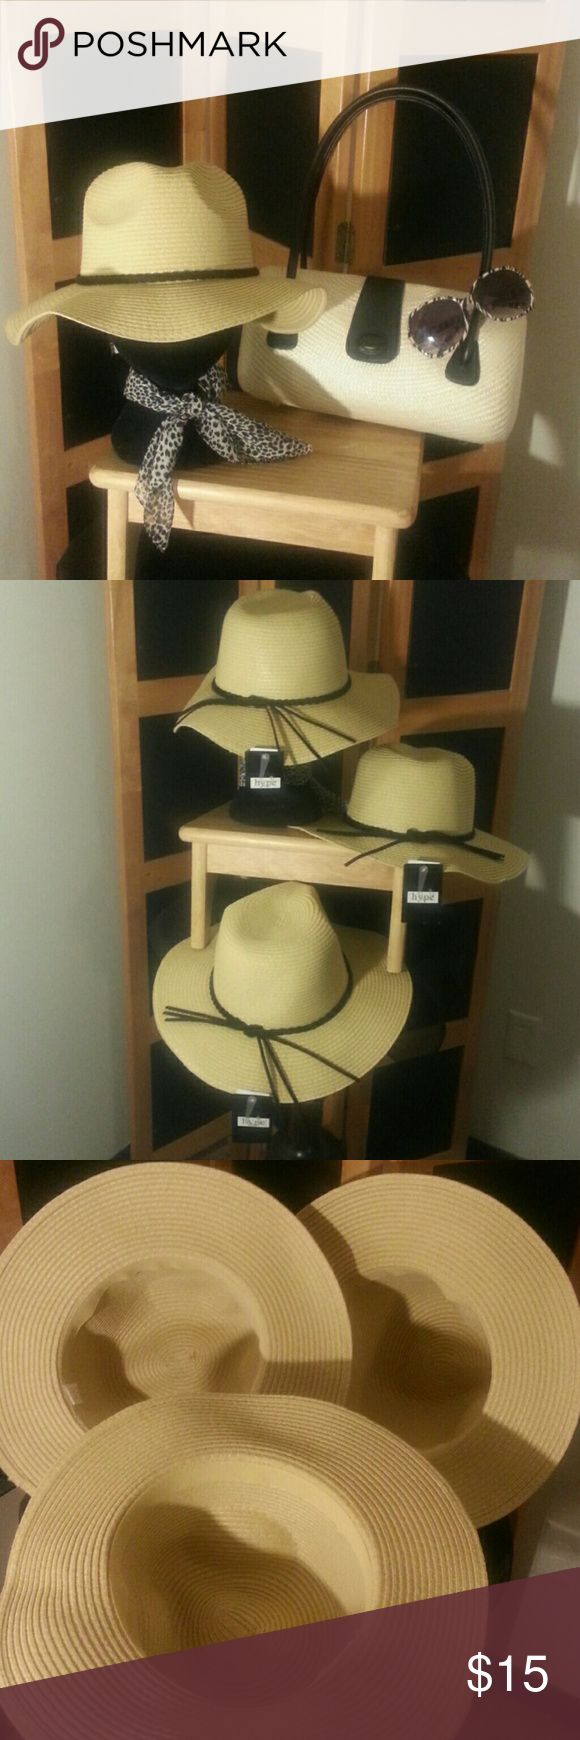 FLOPPY FEDORA HAT W/Black BAND FLOPPY FEDORA HAT - Natural Cream color w/ black band, Lightweight and Flexible, Can be worn to dress up or down your summer outfits!  ONE SIZE FITS ALL,  NWT, EXCELLENT CONDITION!! 🚫NO PETS 🚫NO SMOKE 🚫NO FLAWS  👒  **3 AVAILABLE** (LISTING PRICE PER HAT EACH) Hype Accessories Hats